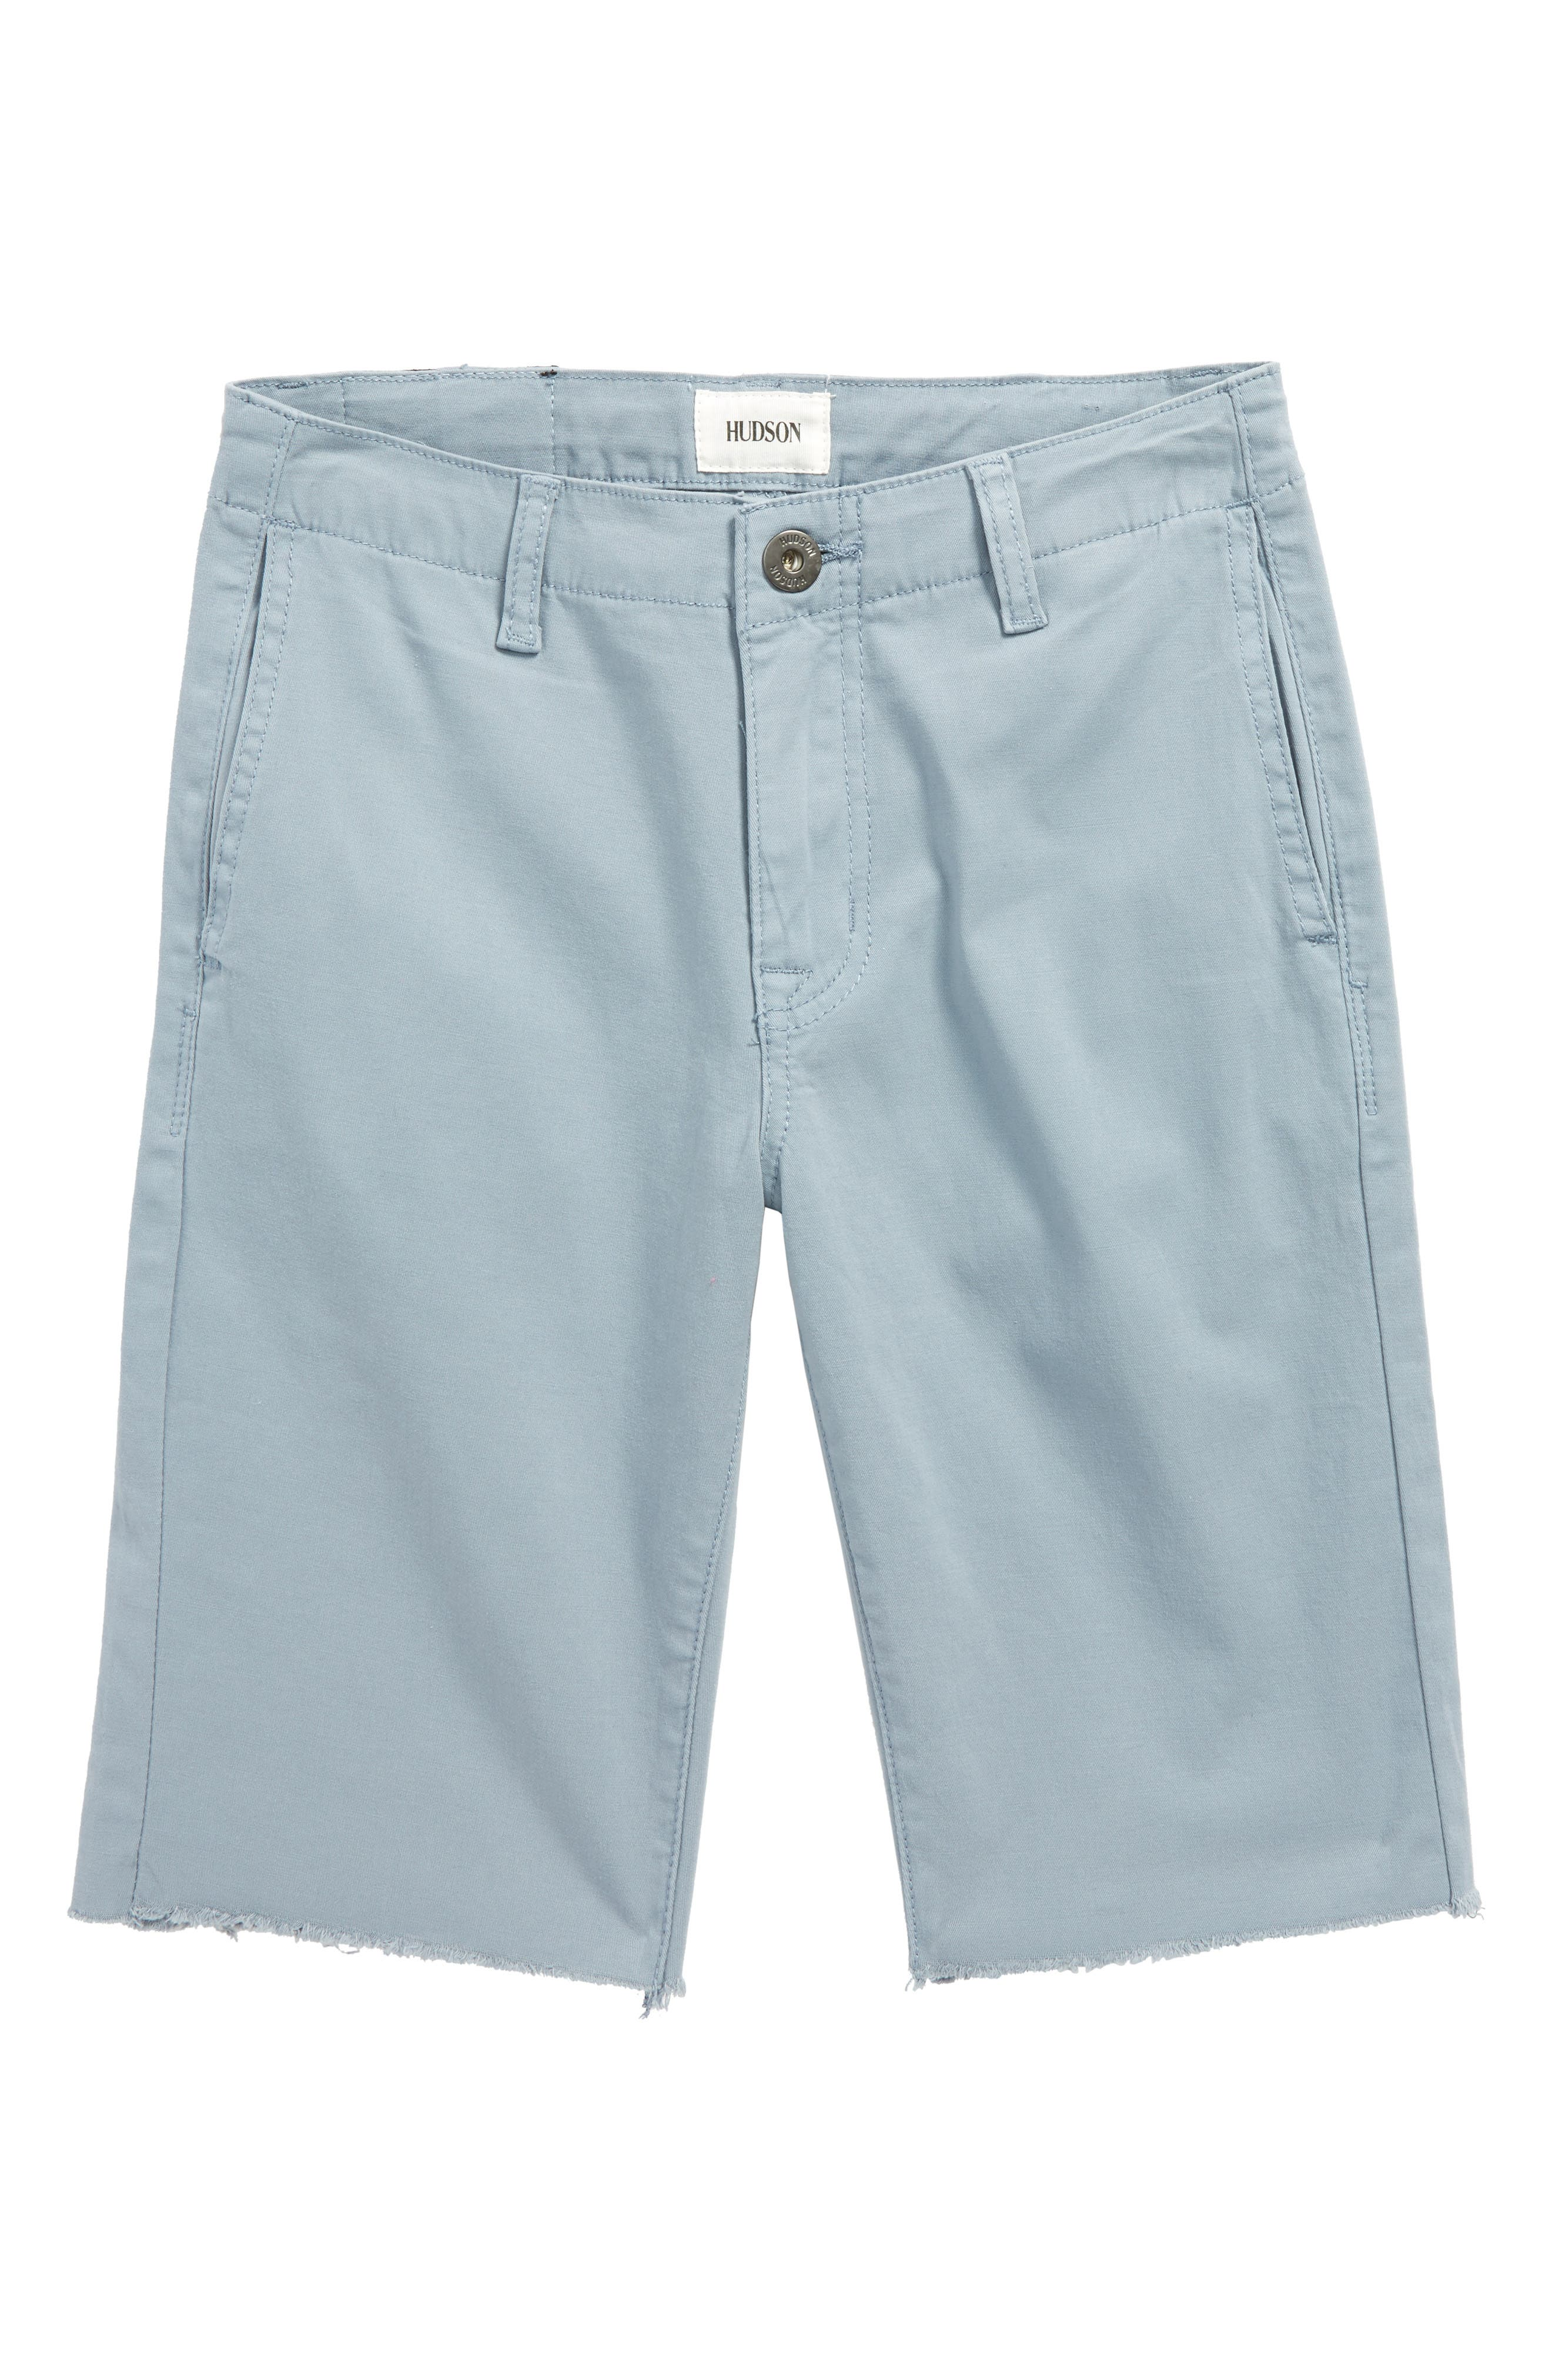 Beach Daze Shorts,                         Main,                         color, 492